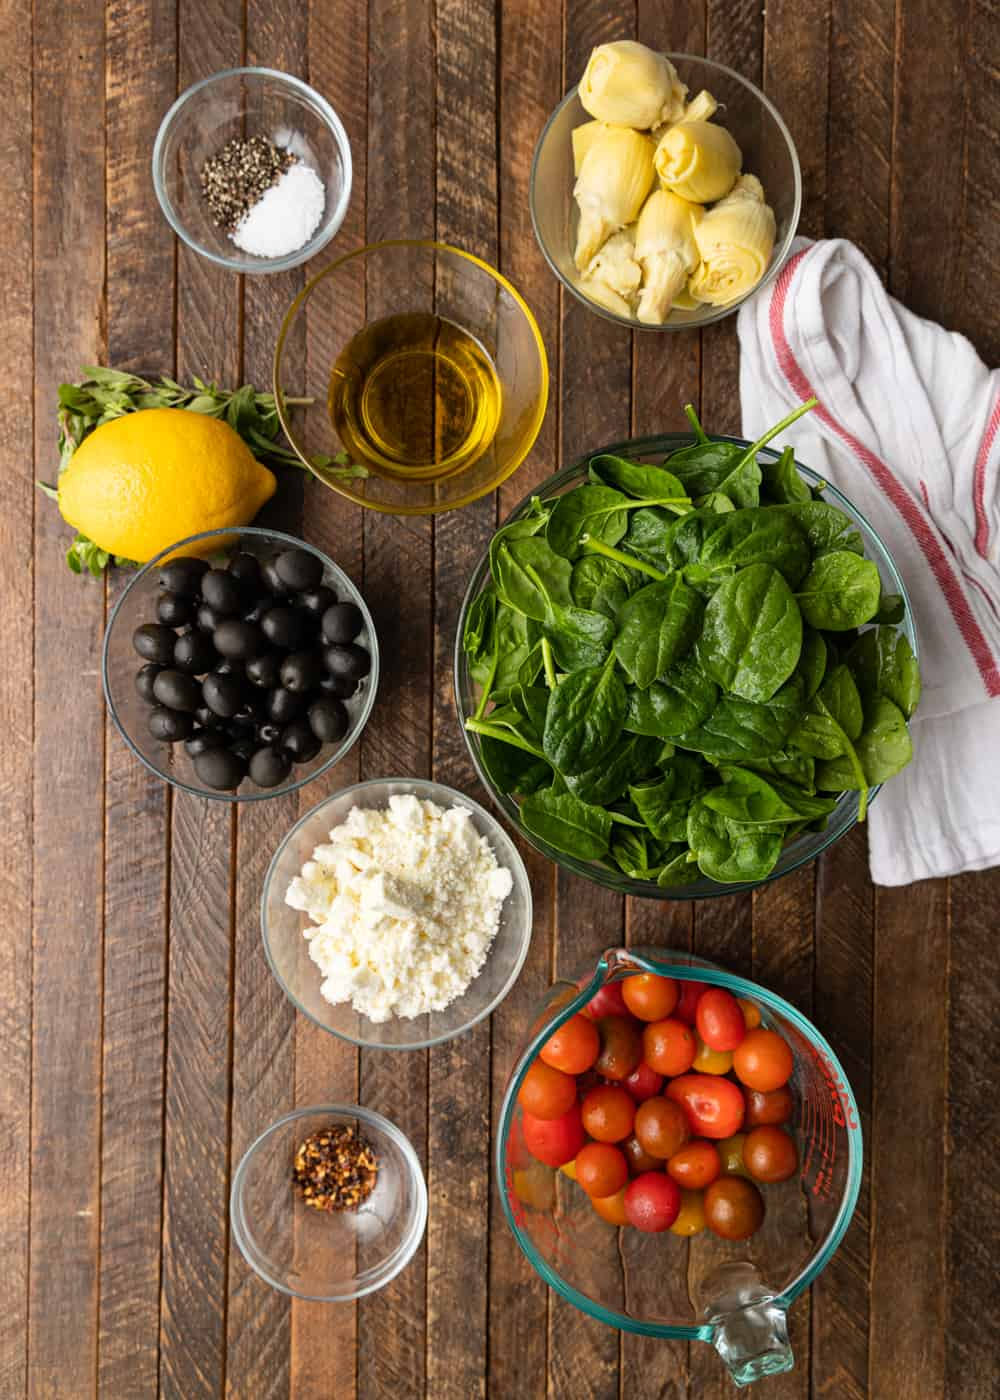 ingredients in pep bowls to make chicken dinner - black olives, tomatoes, feta cheese, spinach, and artichokes